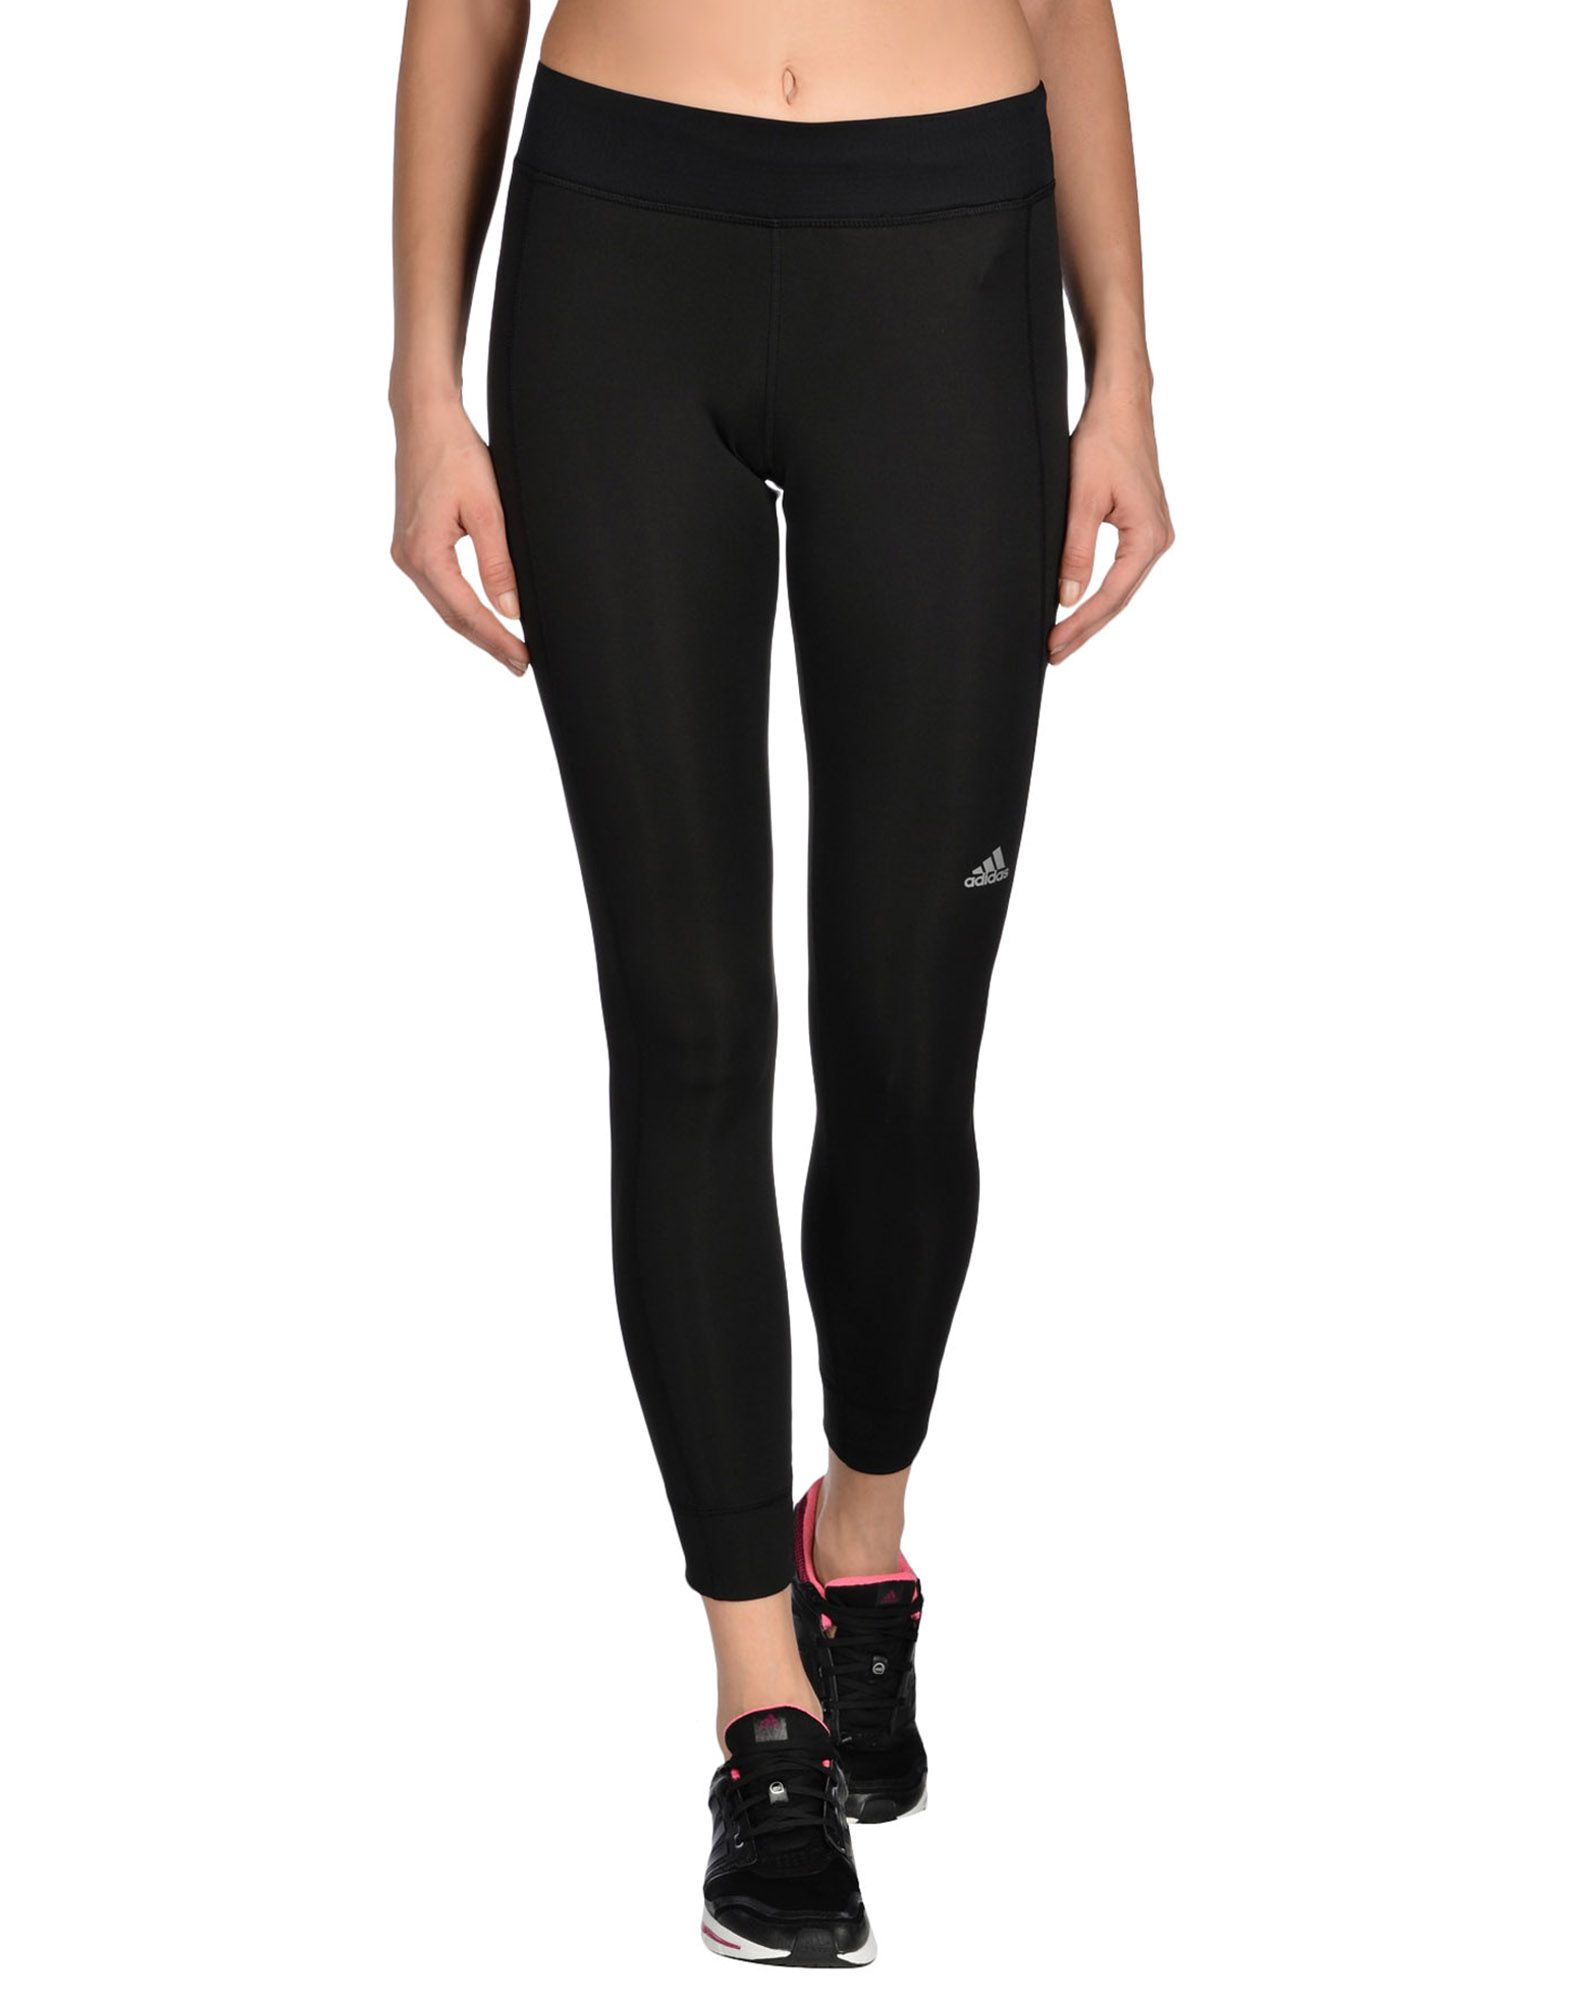 Lyst - Adidas Leggings in Black